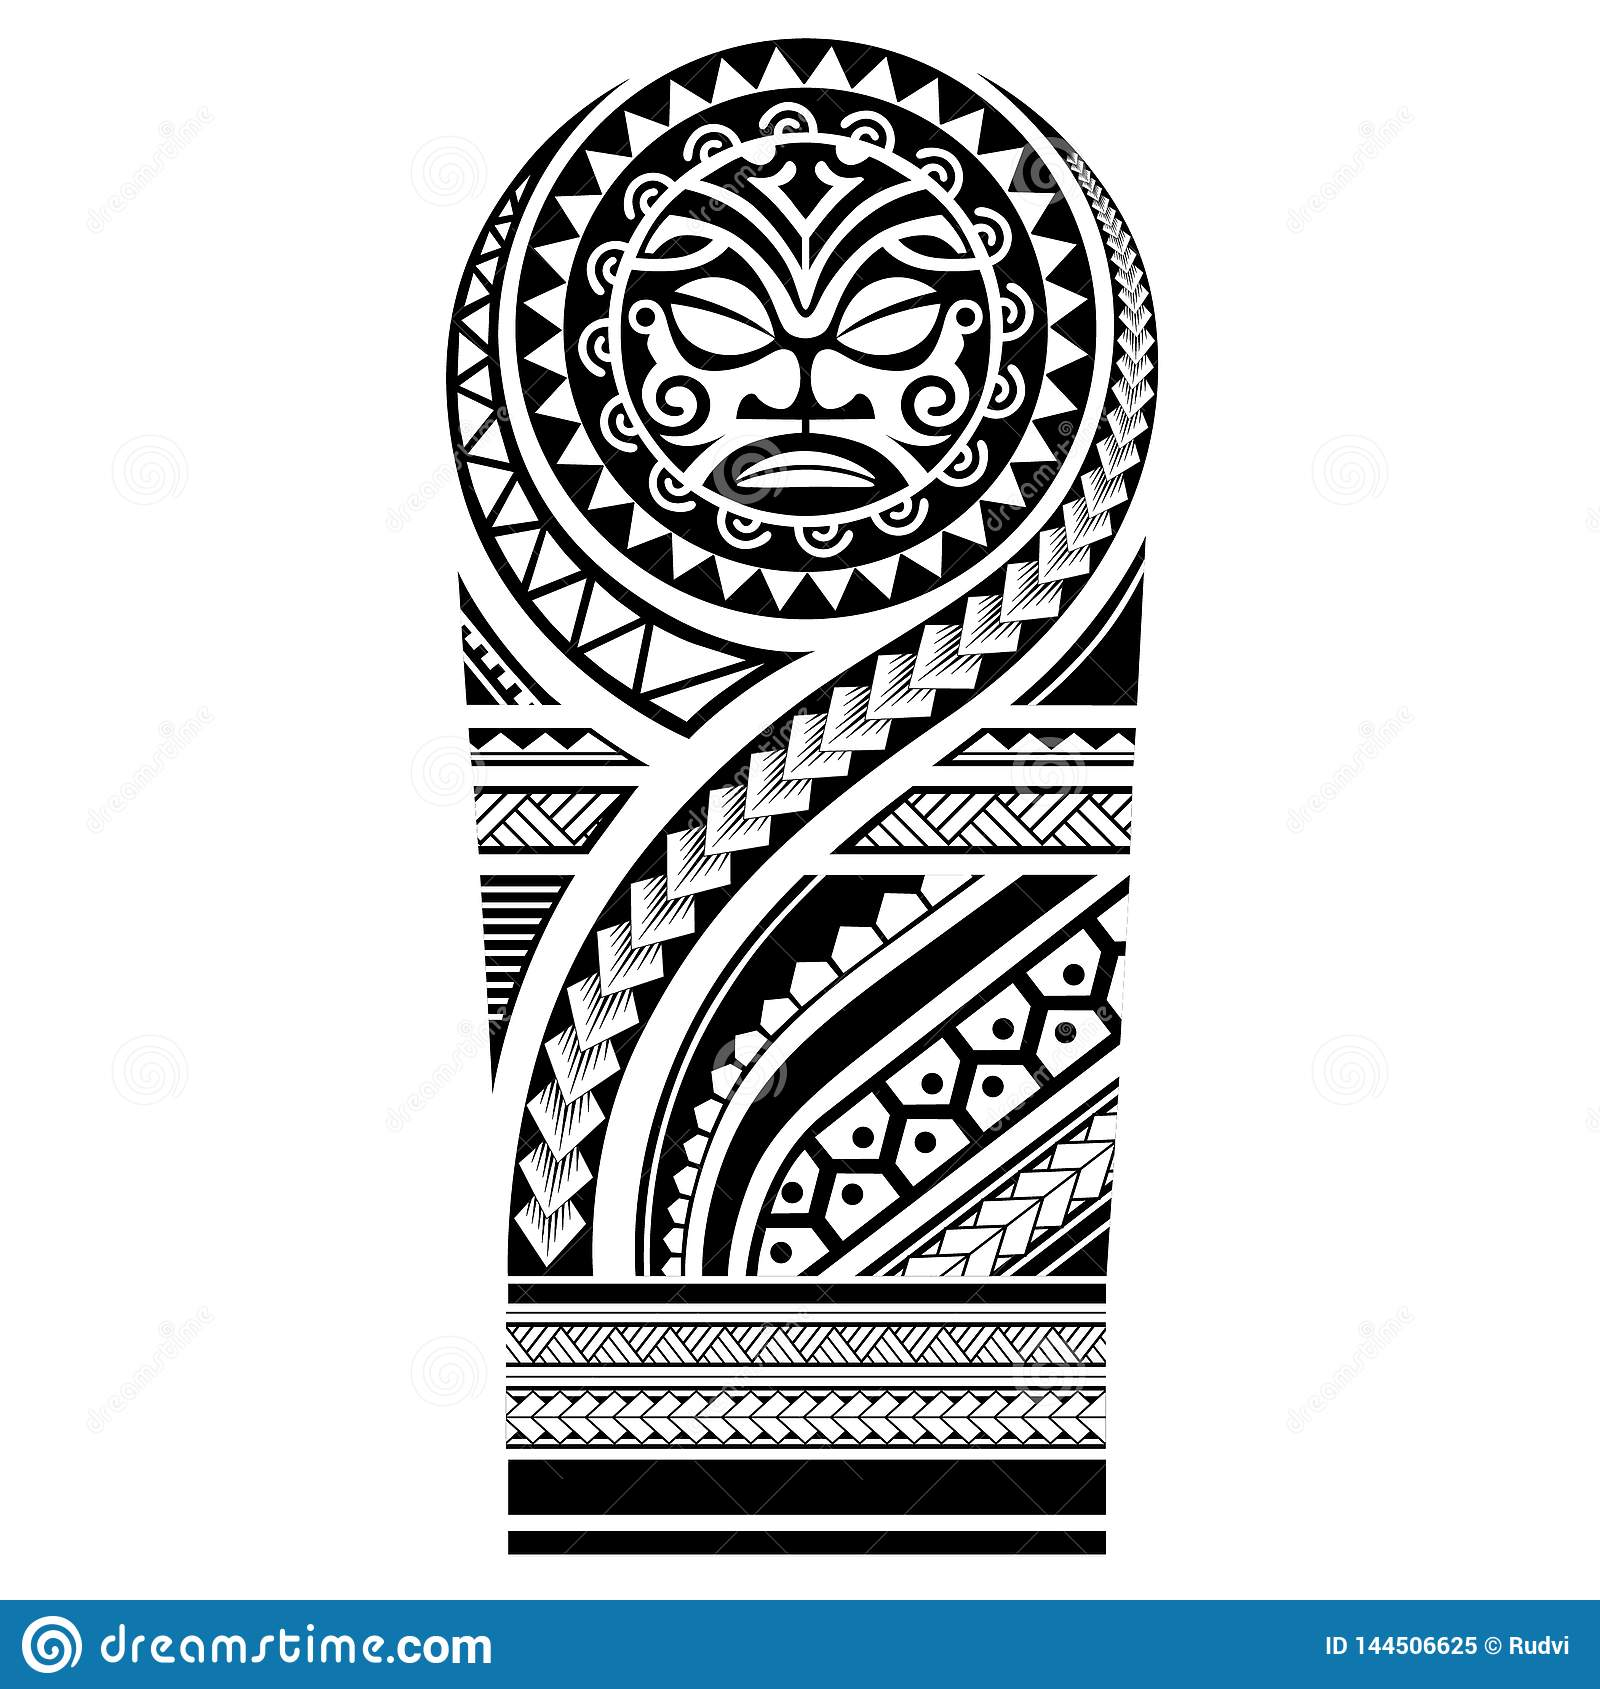 c353d04d17b66 Polynesian tattoo sleeve shoulder sketch pattern , samoan template forearm  and foot design, maori tattoo stencil tribal ornament